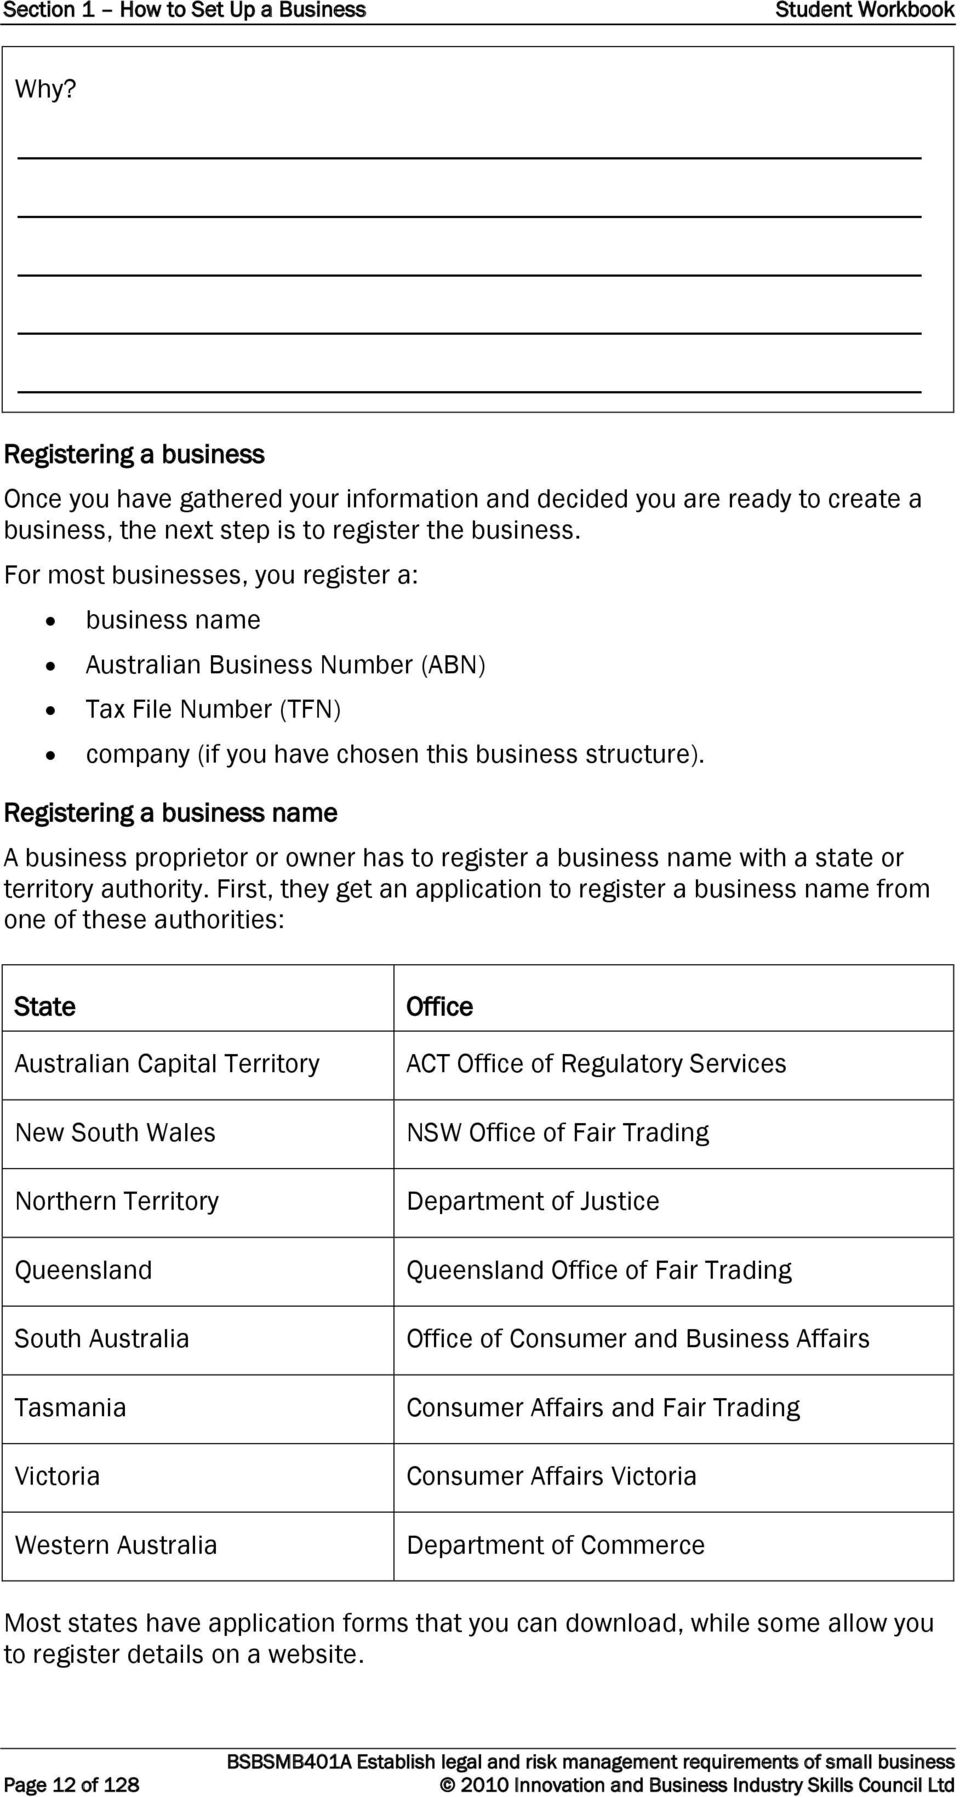 For most businesses, you register a: business name Australian Business Number (ABN) Tax File Number (TFN) company (if you have chosen this business structure).